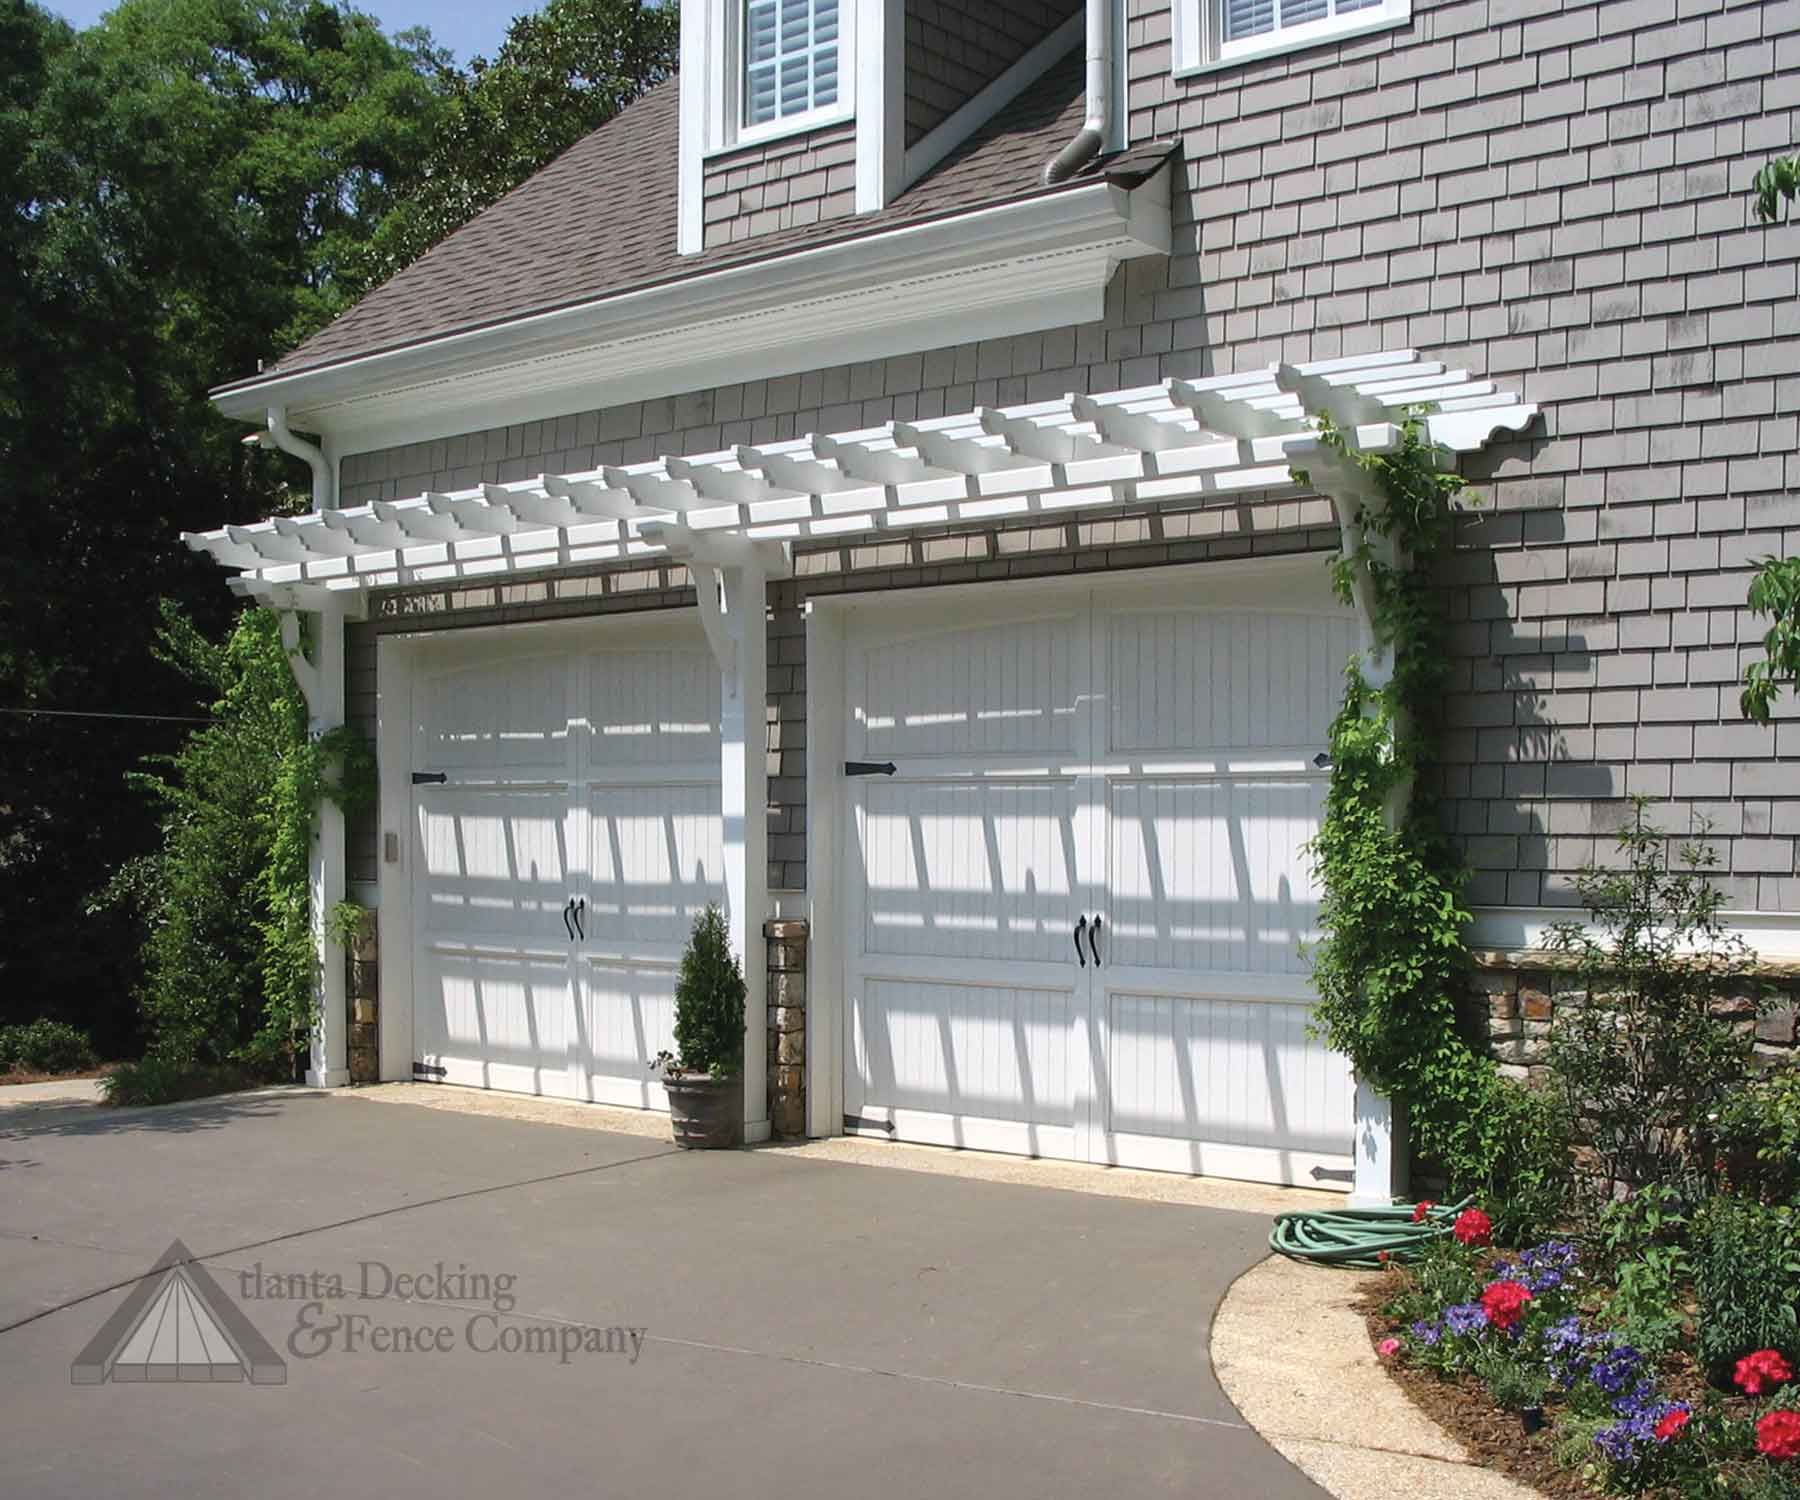 1500 #4B5E38 Pergola Garage Garage Trellis Vinyl Pergola Outdoor Projects Outdoor  picture/photo Overhead Doors Atlanta 36591800